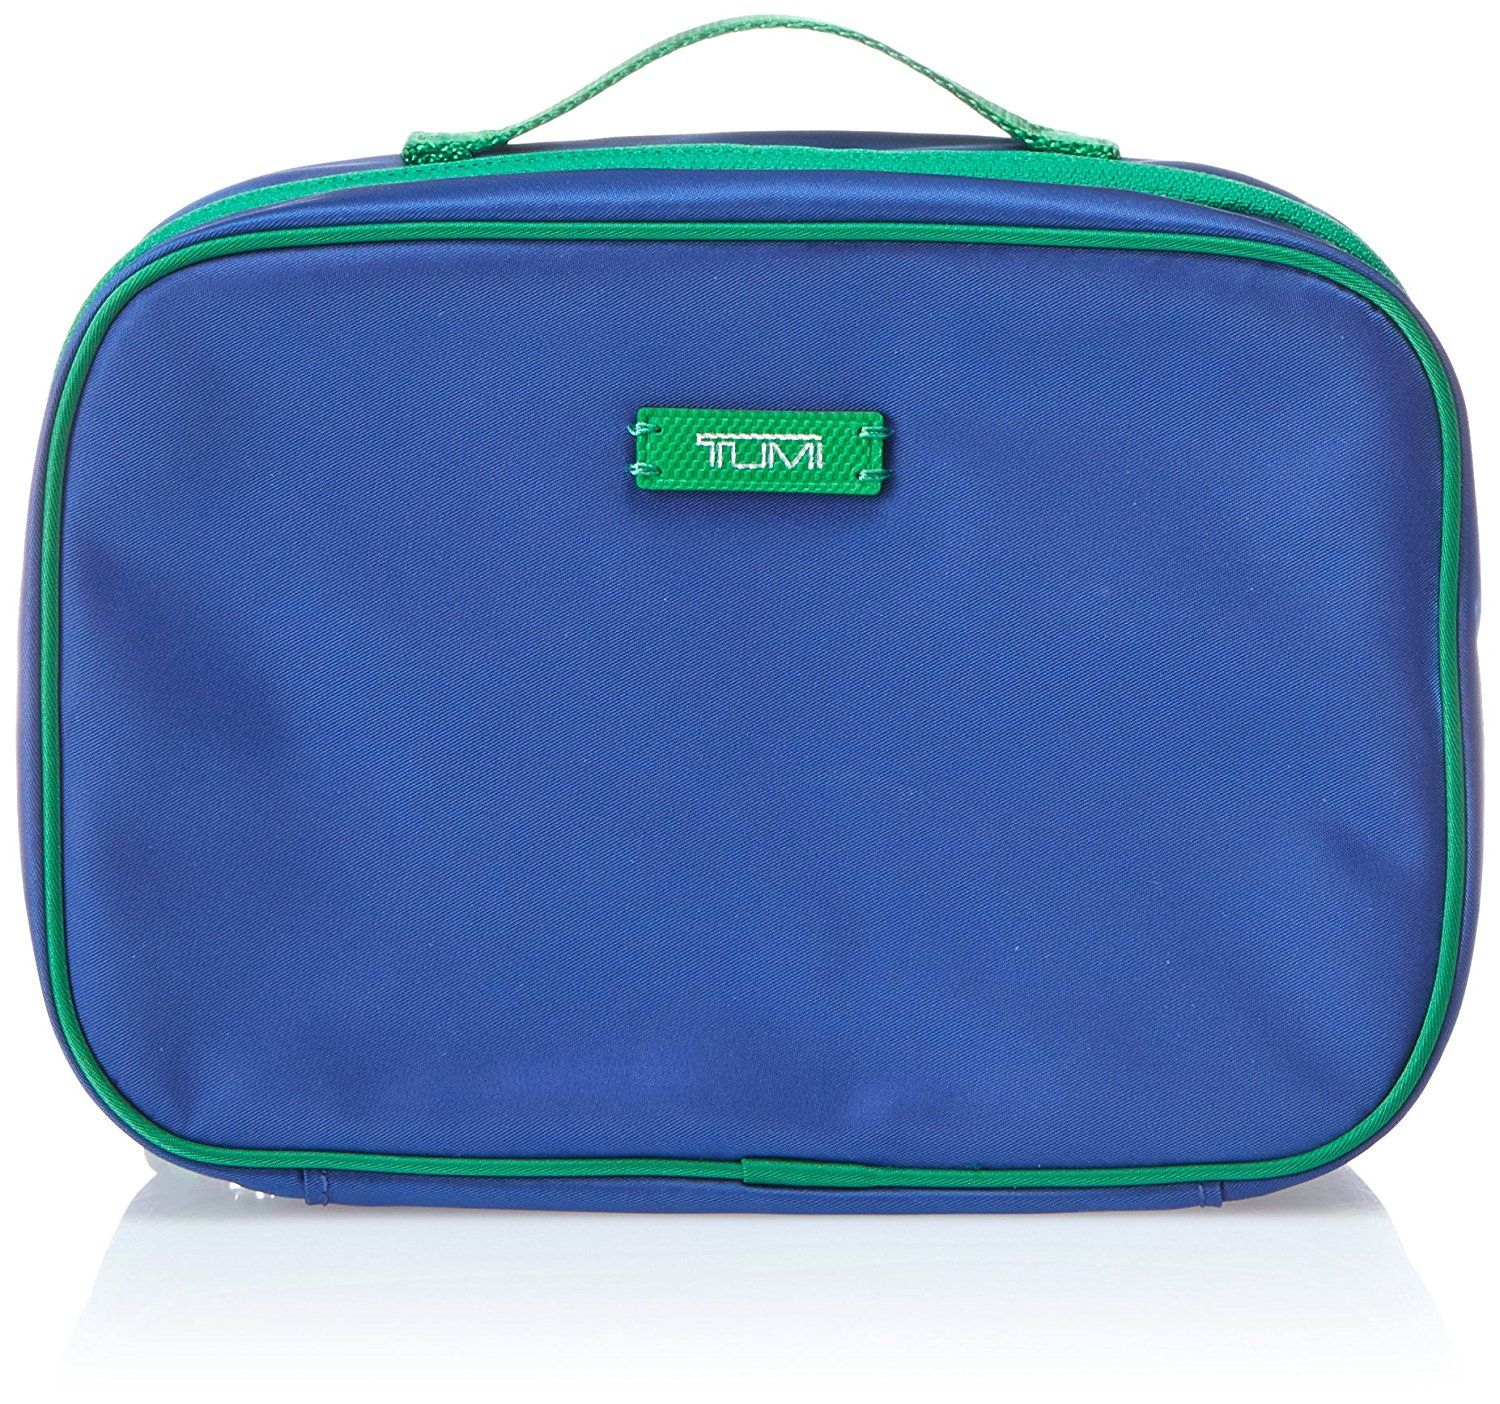 Tumi Journey Lima Travel Toiletry Kit -- Unbelievable  item right here! : Christmas Luggage and Travel Gear